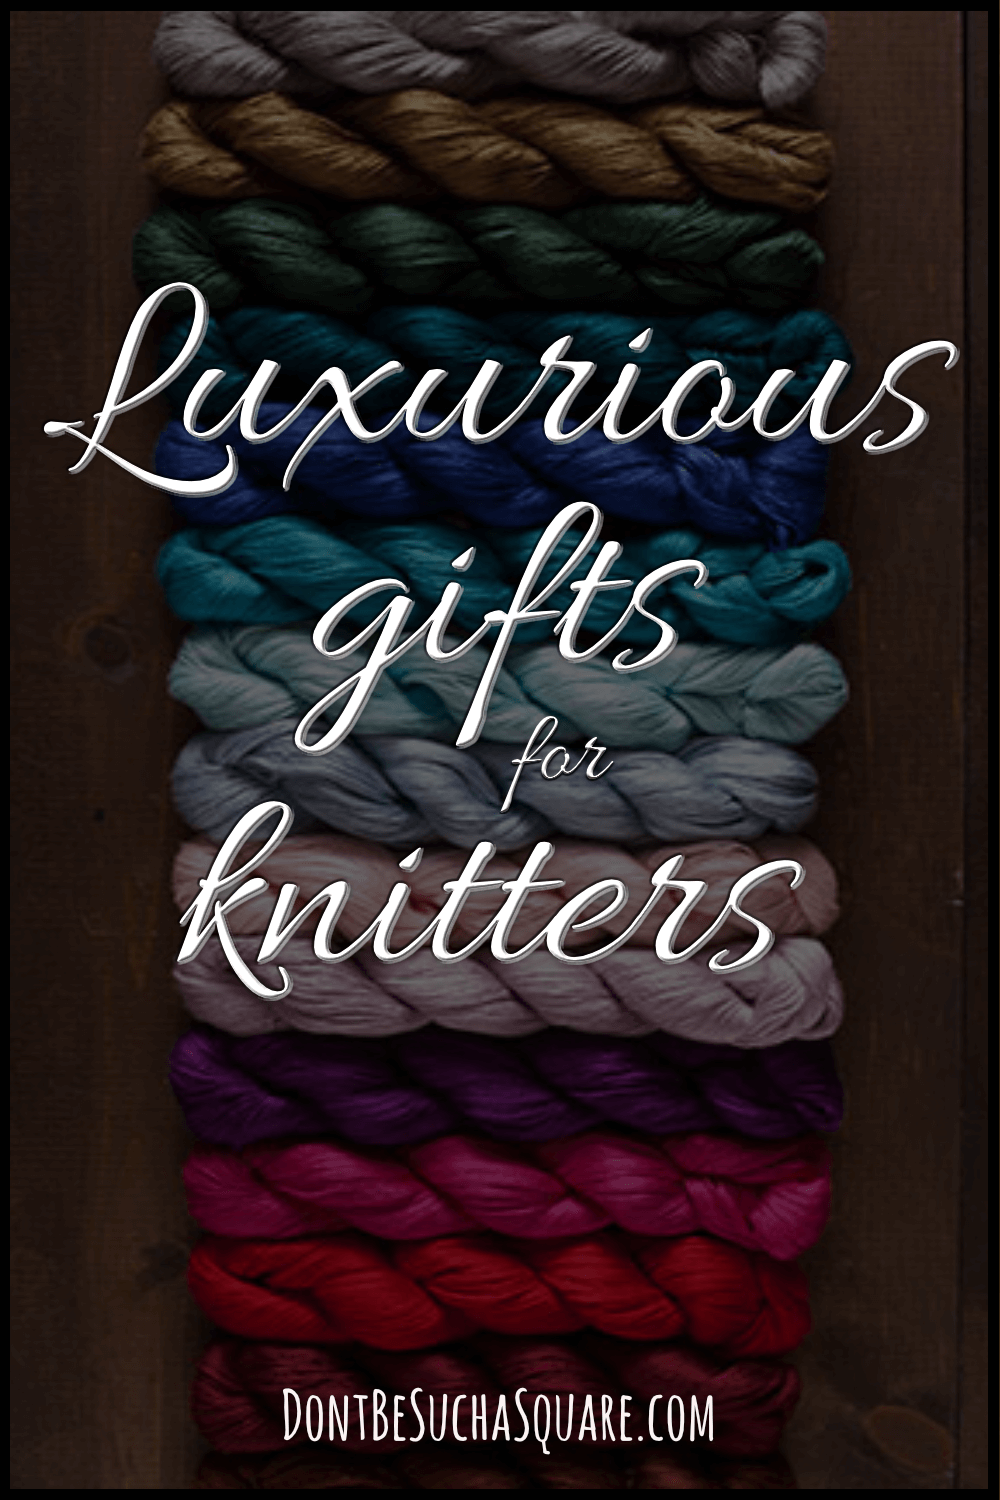 12 luxurious gift ideas that any knitter will love!